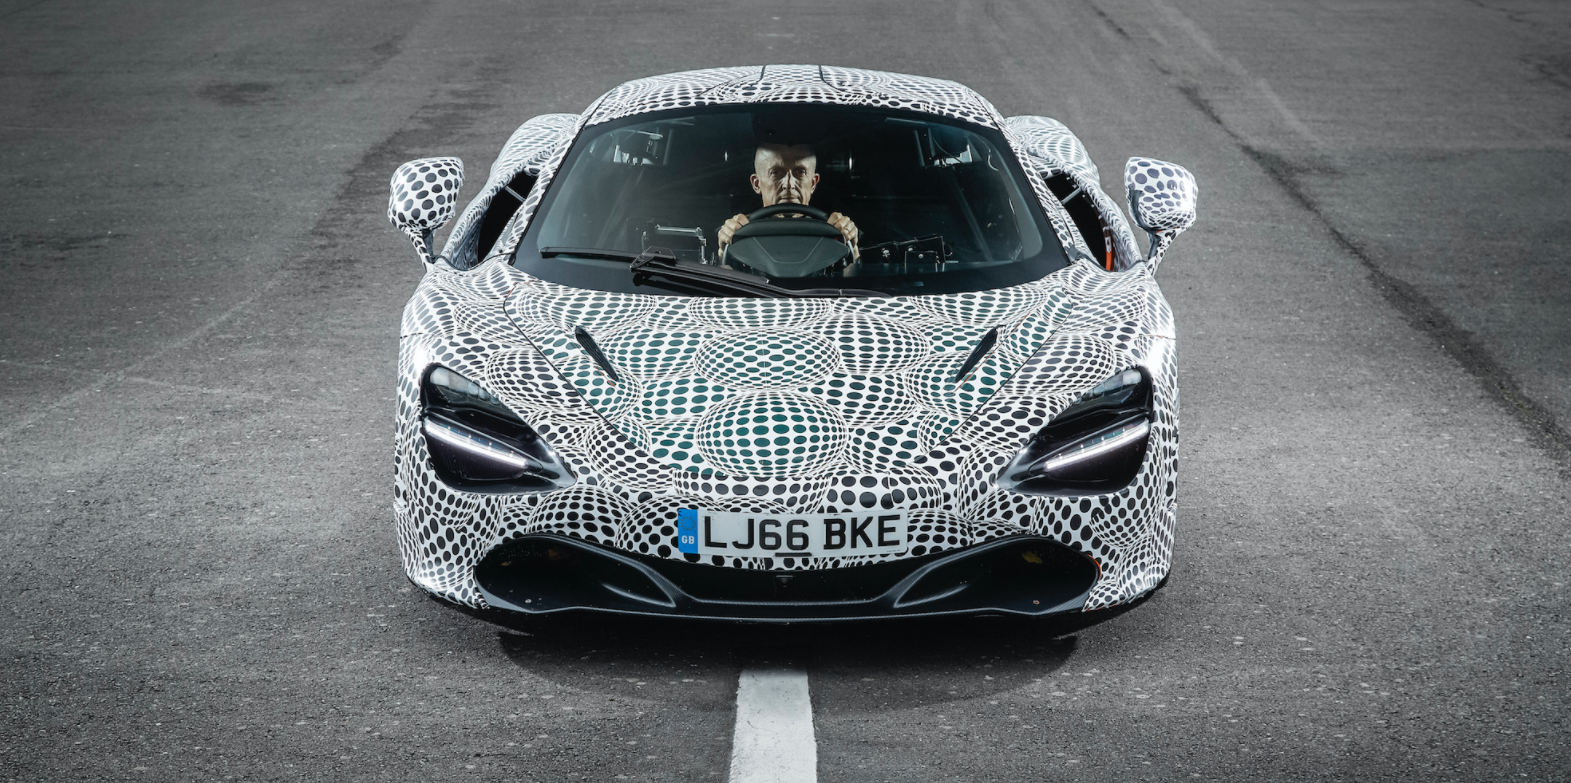 The Three-Seat BP23 Will Be the Fastest McLaren Road Car Ever